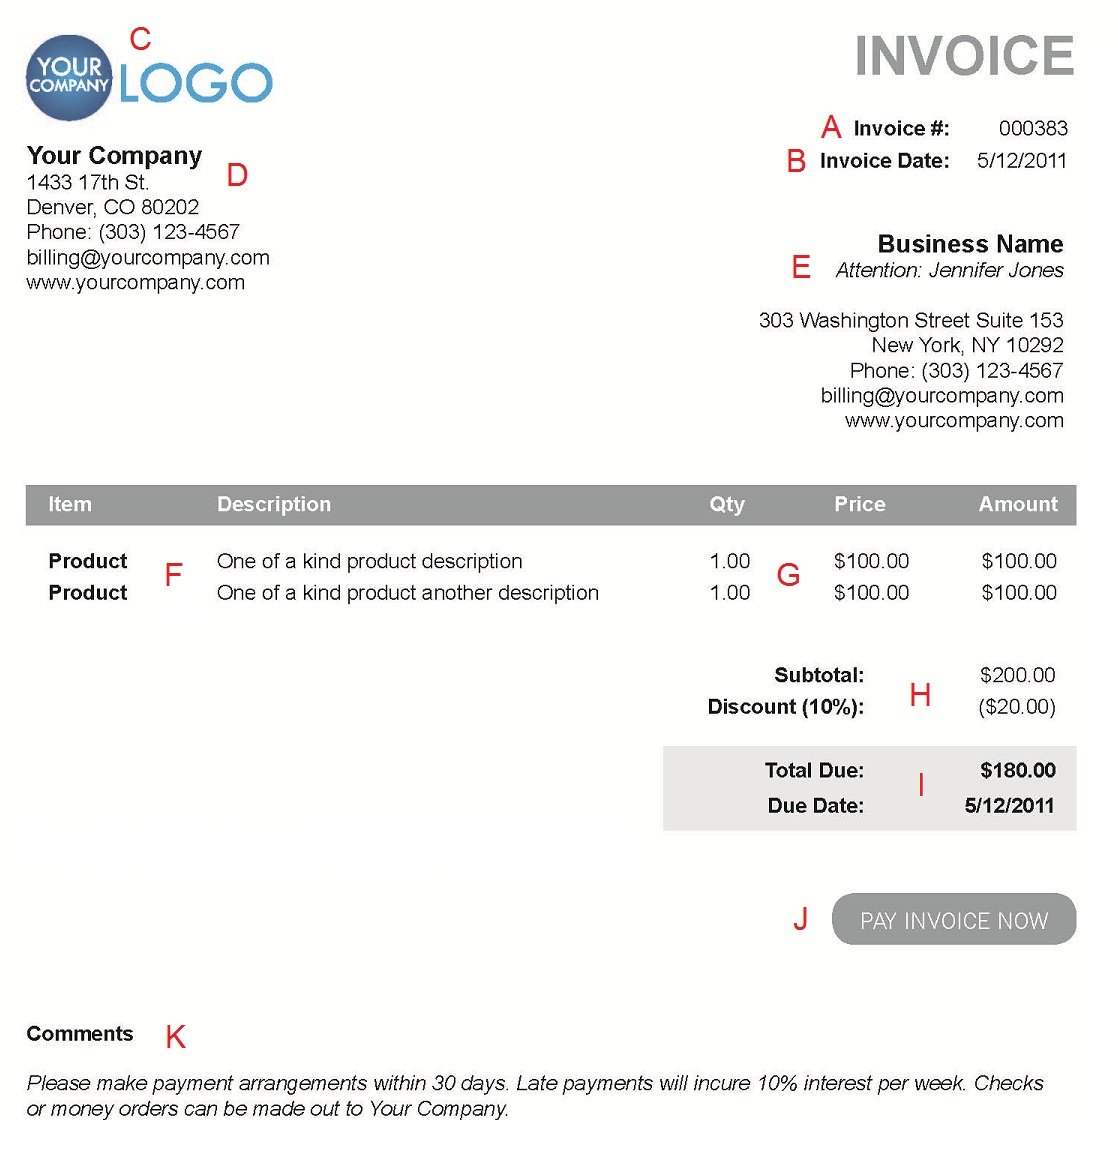 Usdgus  Surprising The  Different Sections Of An Electronic Payment Invoice With Extraordinary A  With Charming Dealer Invoice Price Mazda Cx Also Auto Dealer Invoice Price In Addition Define An Invoice And Make Your Own Invoice Template As Well As Lloyds Invoice Finance Additionally Php Invoice Software From Paysimplecom With Usdgus  Extraordinary The  Different Sections Of An Electronic Payment Invoice With Charming A  And Surprising Dealer Invoice Price Mazda Cx Also Auto Dealer Invoice Price In Addition Define An Invoice From Paysimplecom